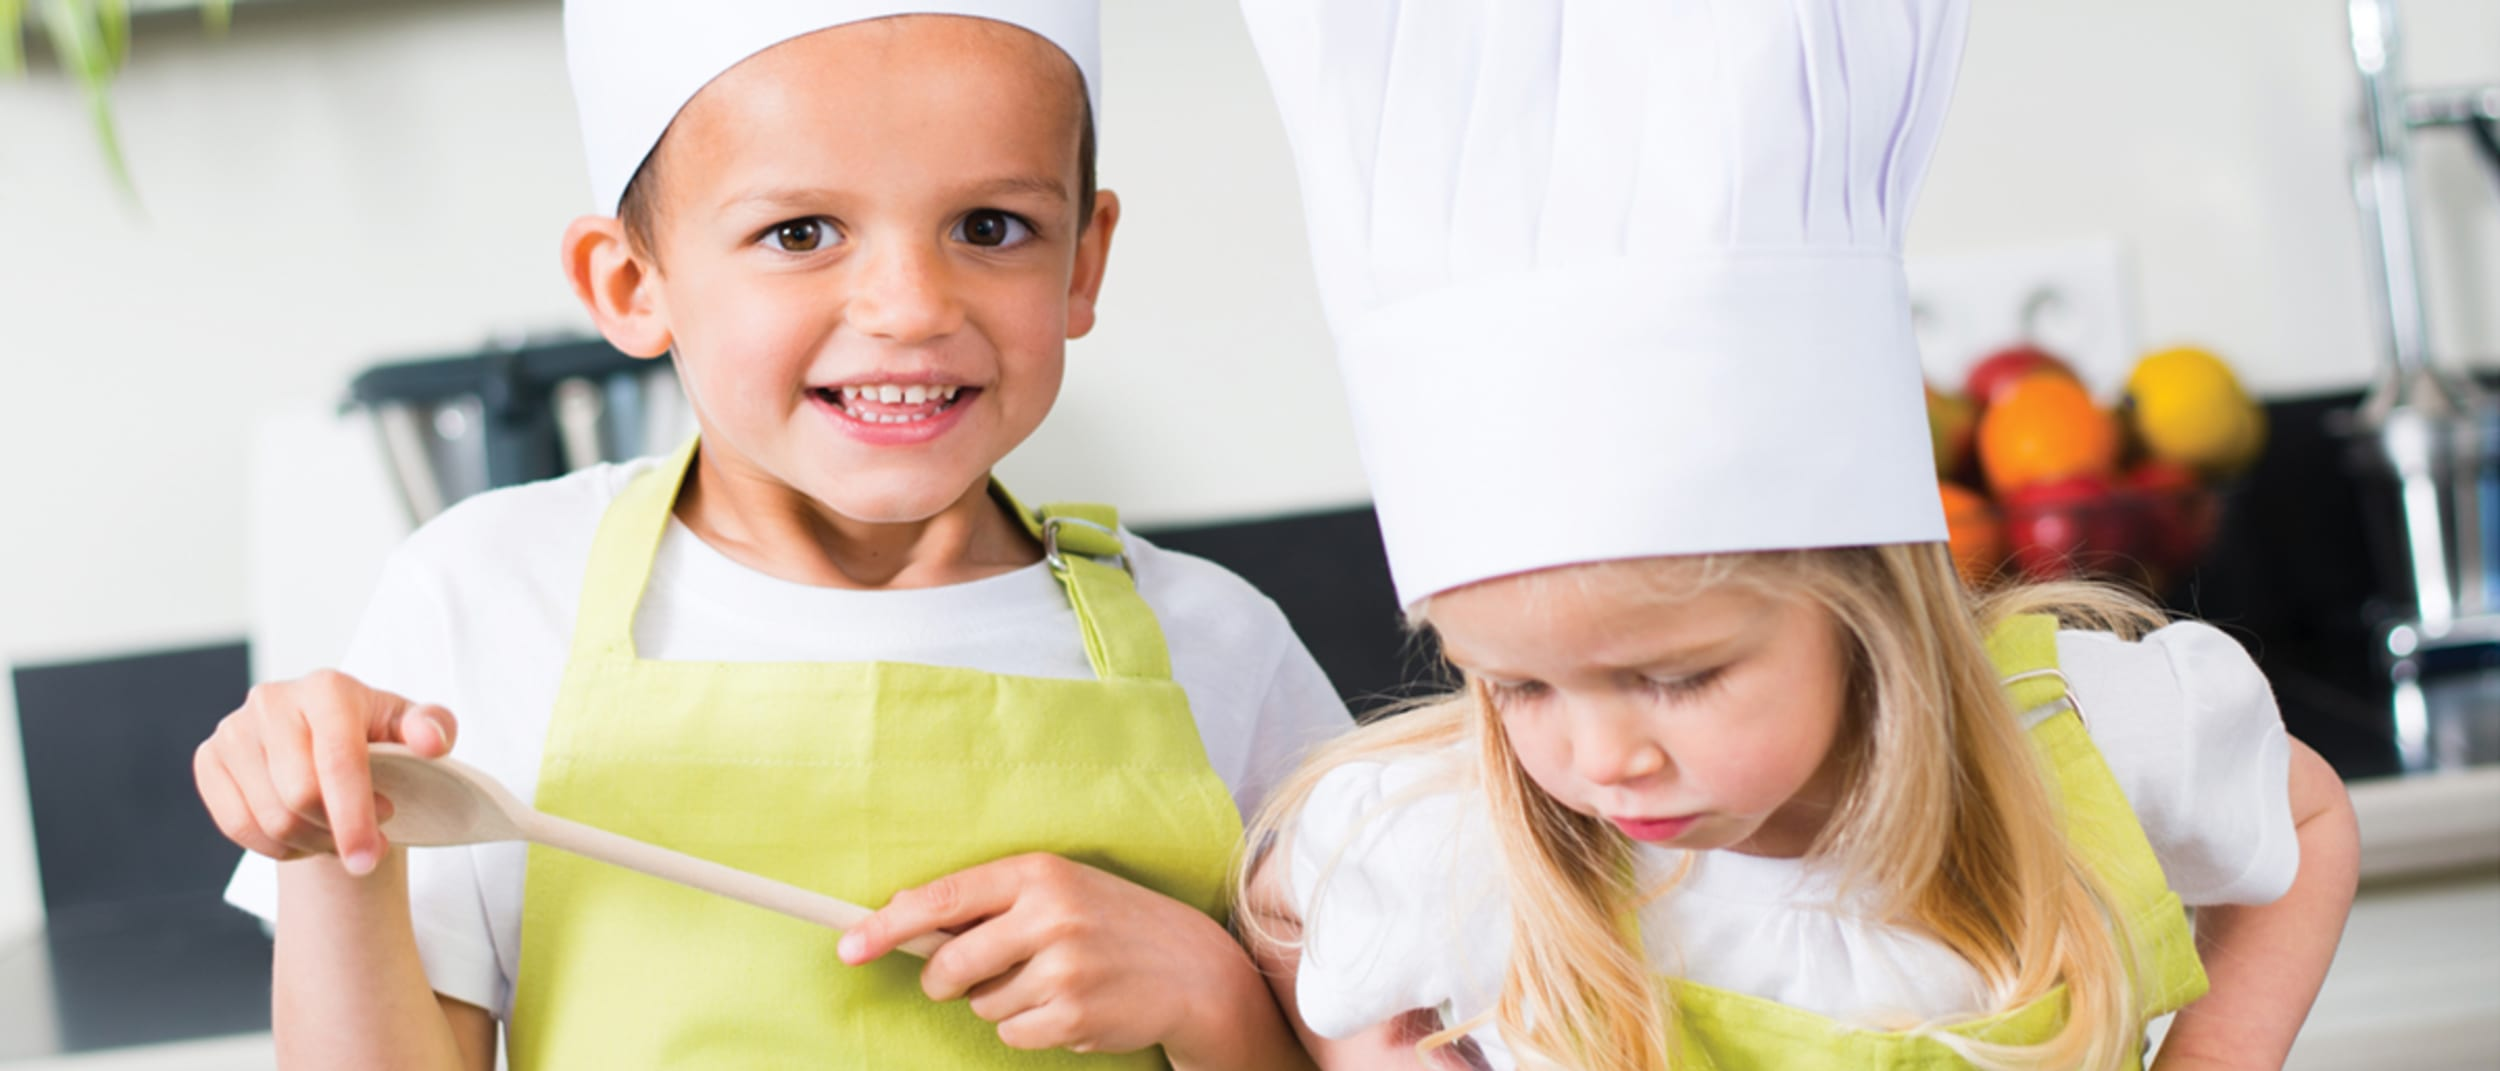 Junior chef masterclasses